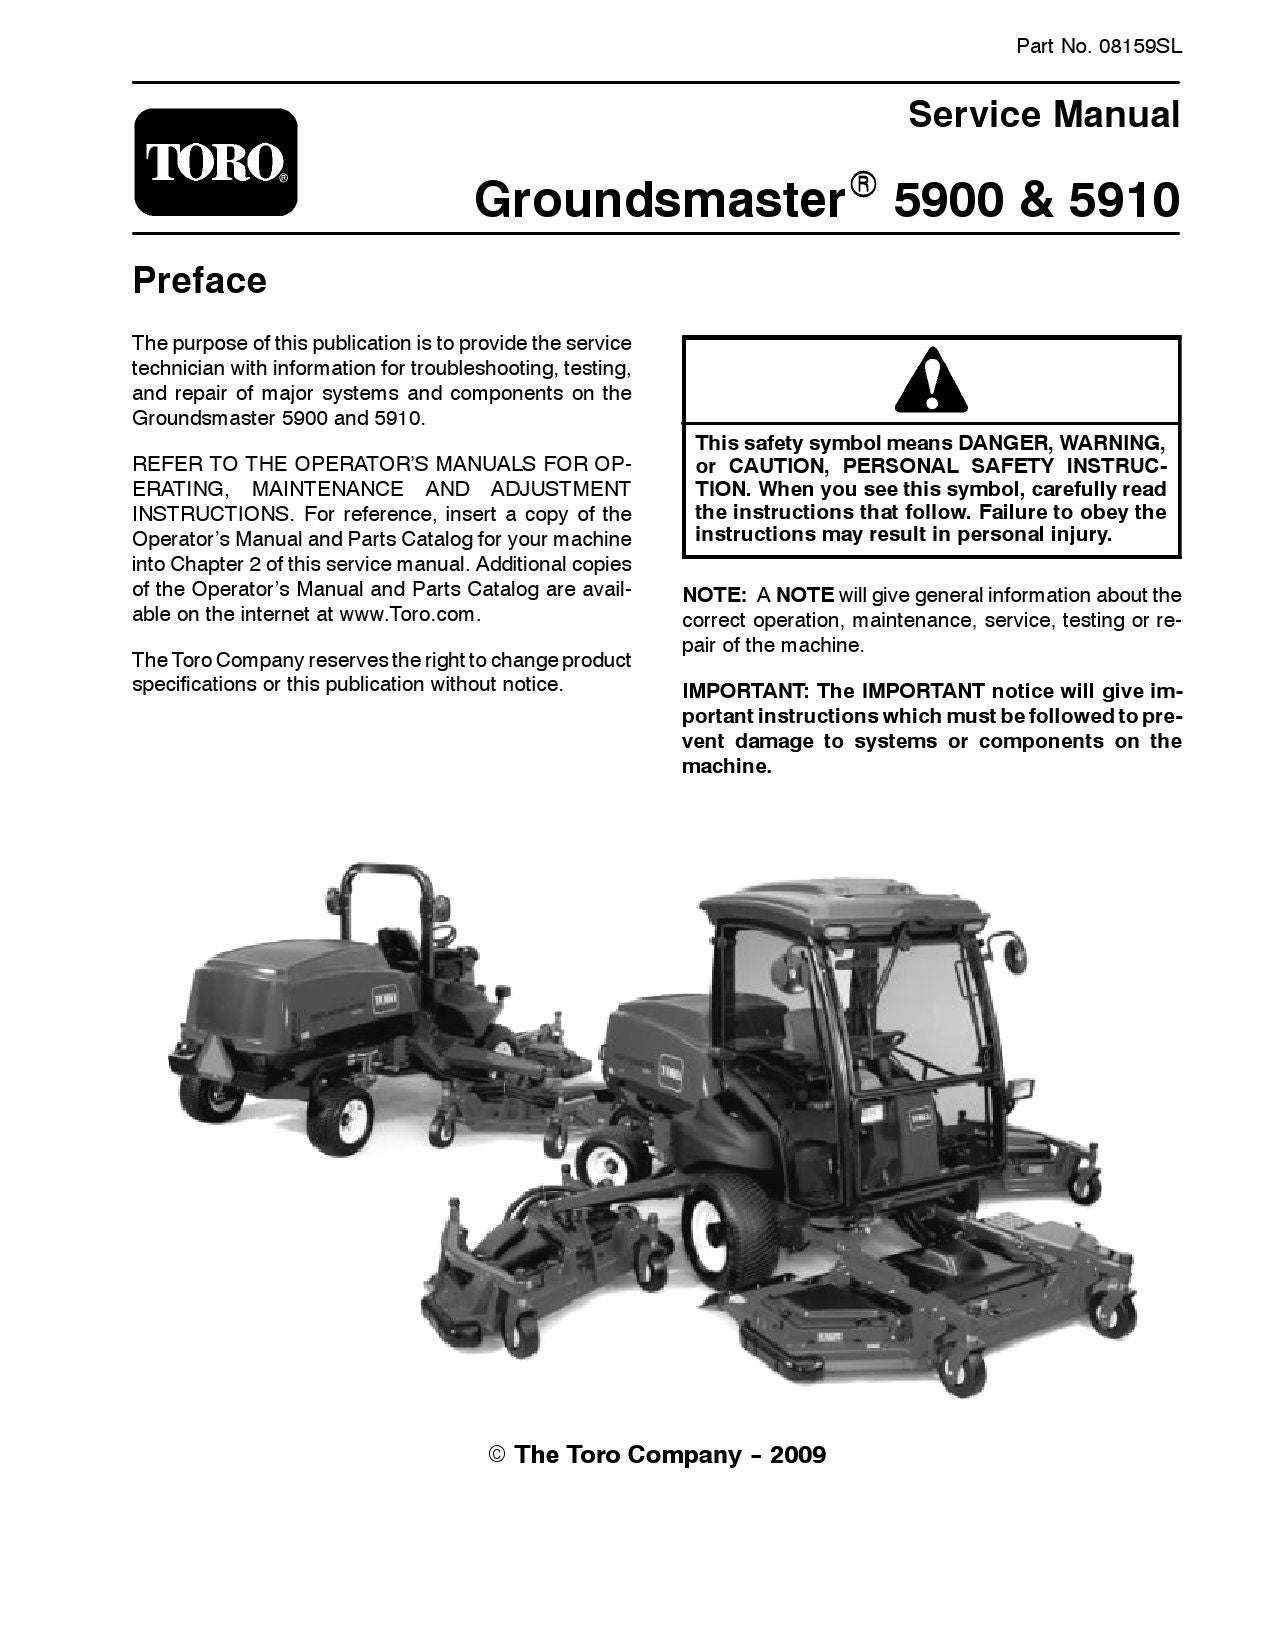 hight resolution of 08159sl pdf groundsmaster 5900 5910 jan 2009 new by negimachi negimachi issuu